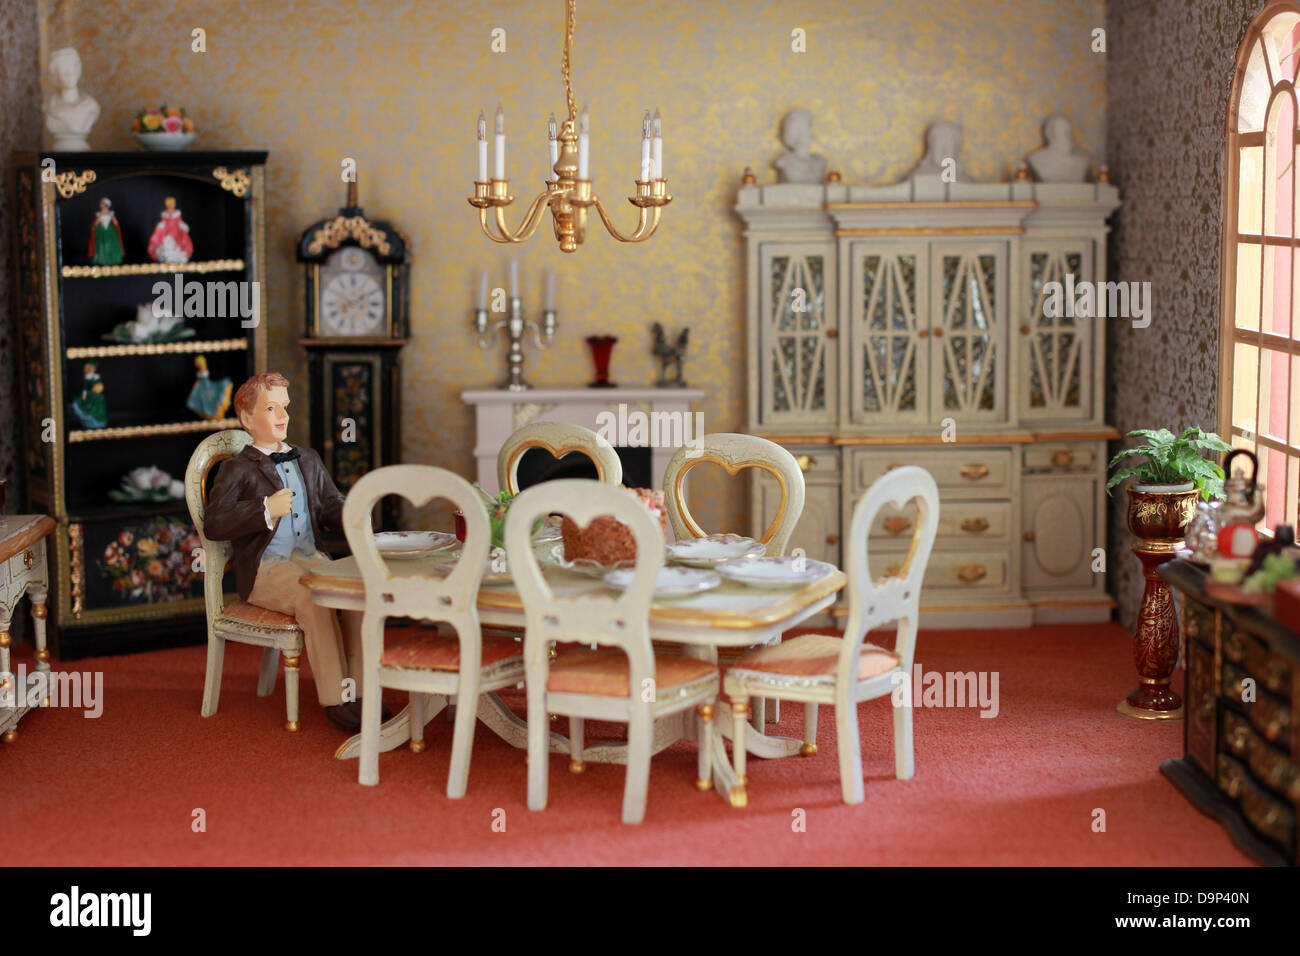 Dolls House Furniture High Resolution Stock Photography And Images Alamy